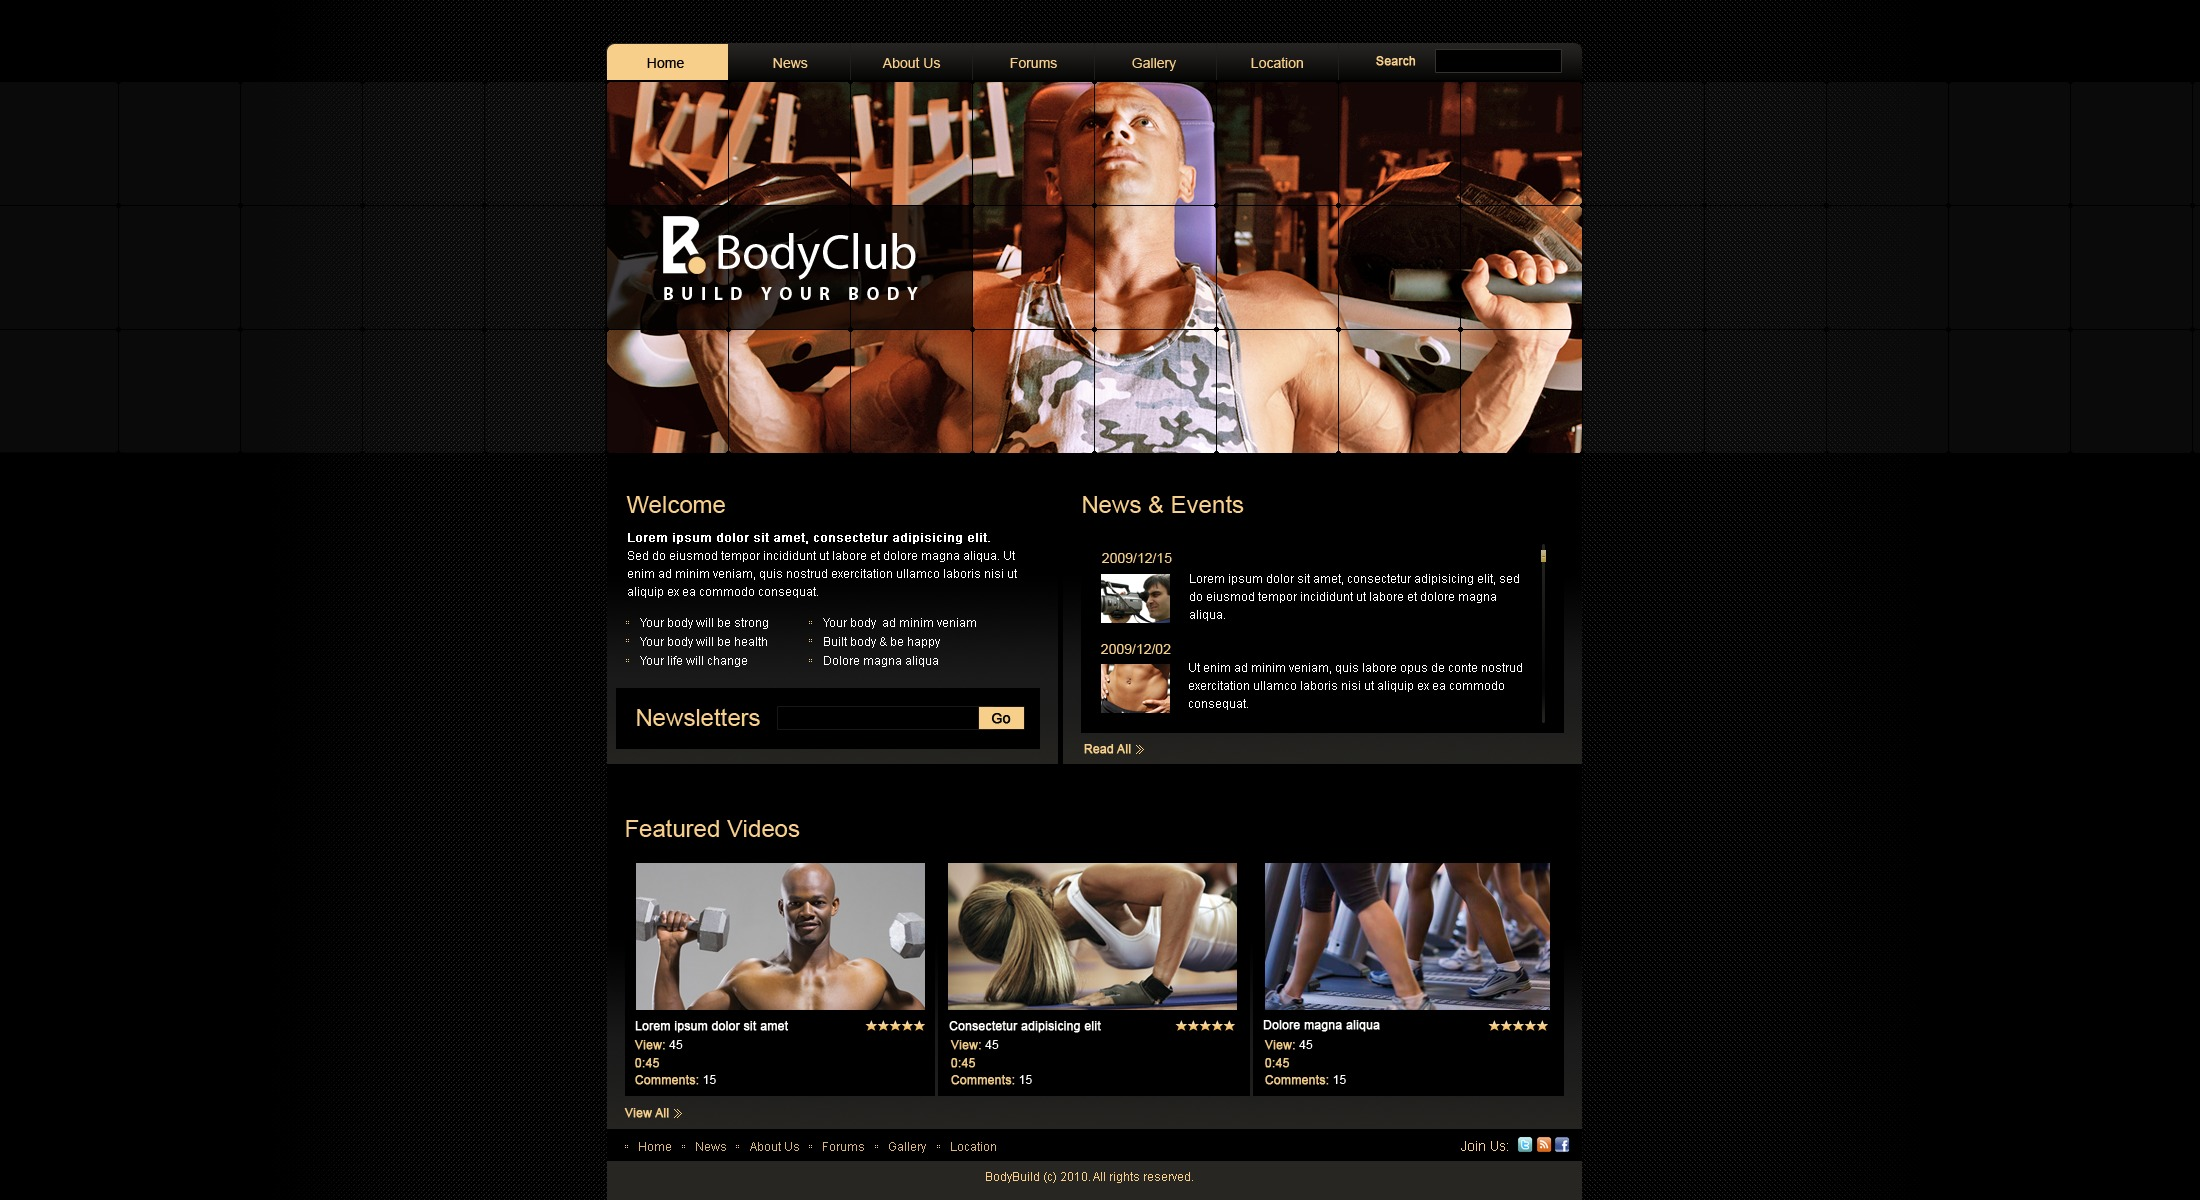 The Body Club PSD Design 54093, one of the best PSD templates of its kind (sport, flash 8, wide), also known as body club PSD template, building PSD template, fitness center PSD template, body PSD template, health PSD template, sport PSD template, solarium PSD template, beautiful club PSD template, sport PSD template, solarium PSD template, sunskin PSD template, healthcare salon PSD template, cosmetology and related with body club, building, fitness center, body, health, sport, solarium, beautiful club, sport, solarium, sunskin, healthcare salon, cosmetology, etc.